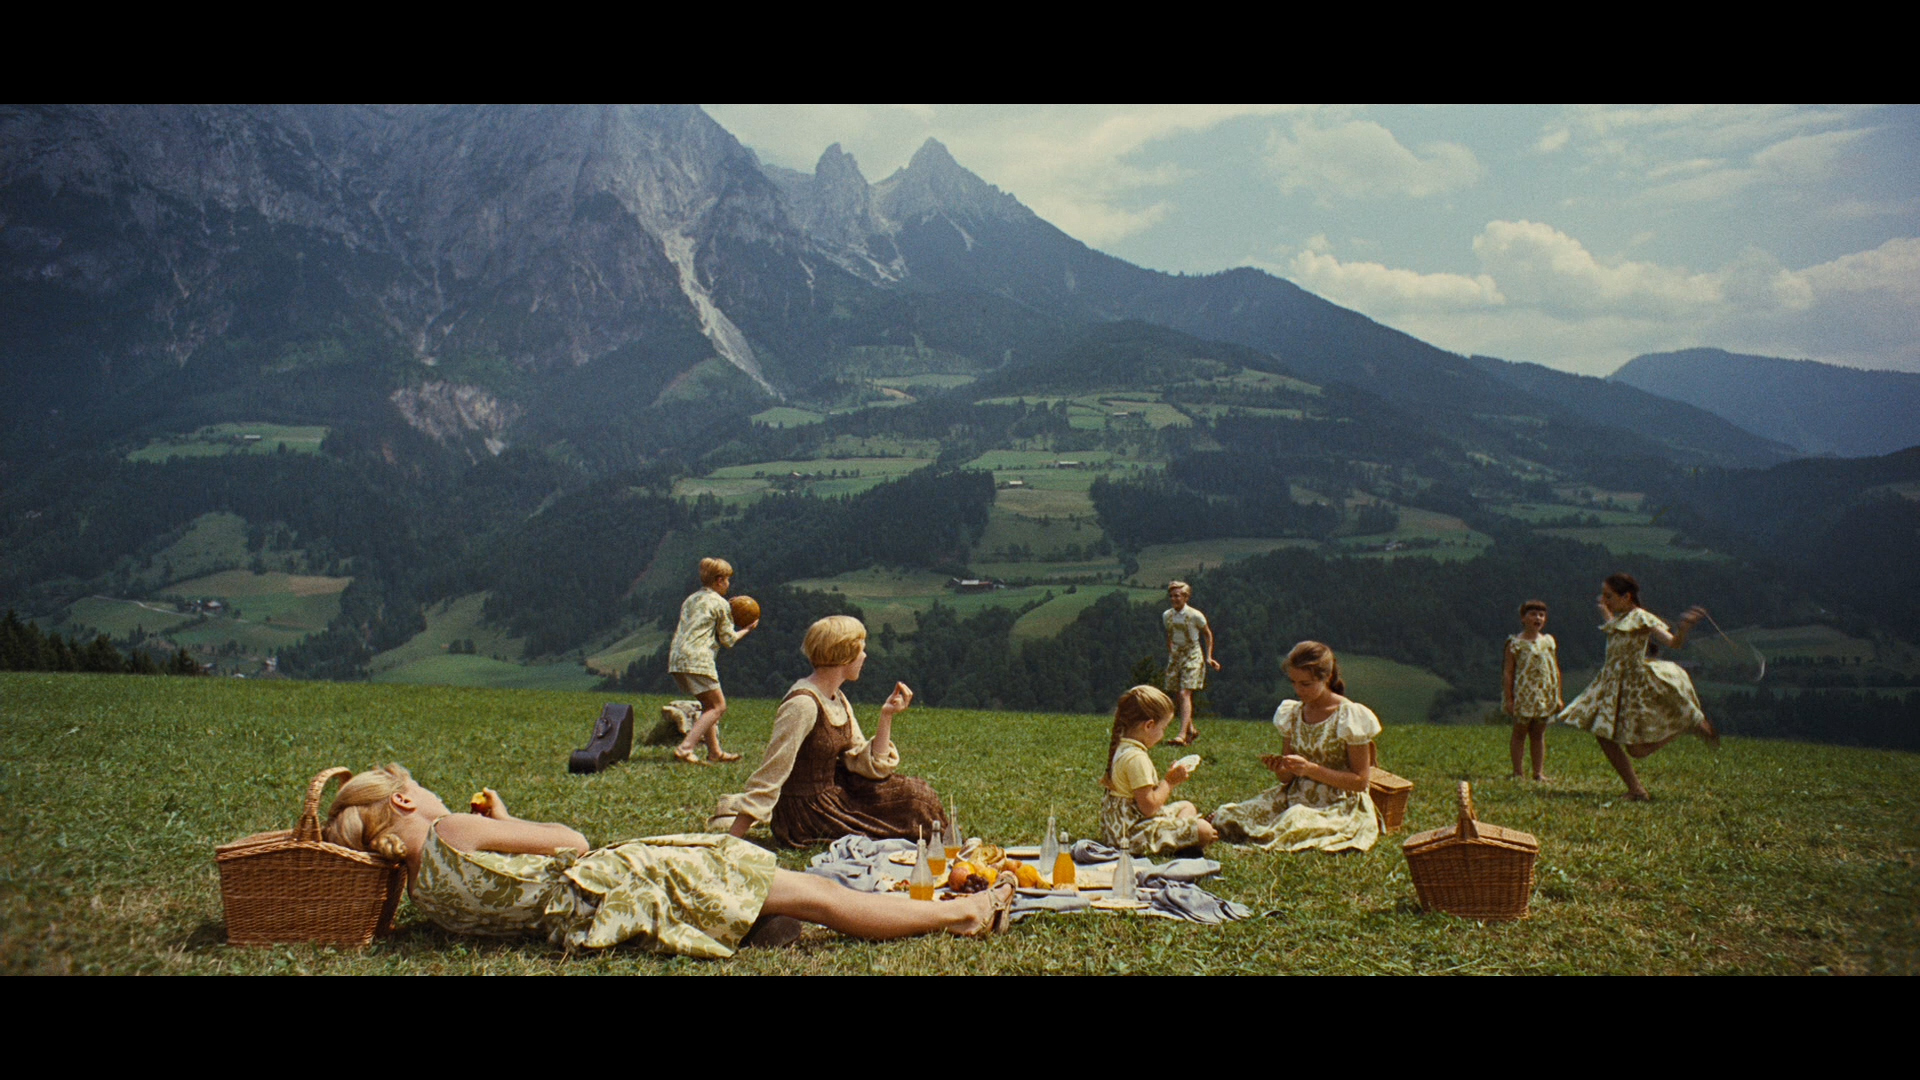 The Sound of Music Theme Song Movie Theme Songs TV Soundtracks 1920x1080